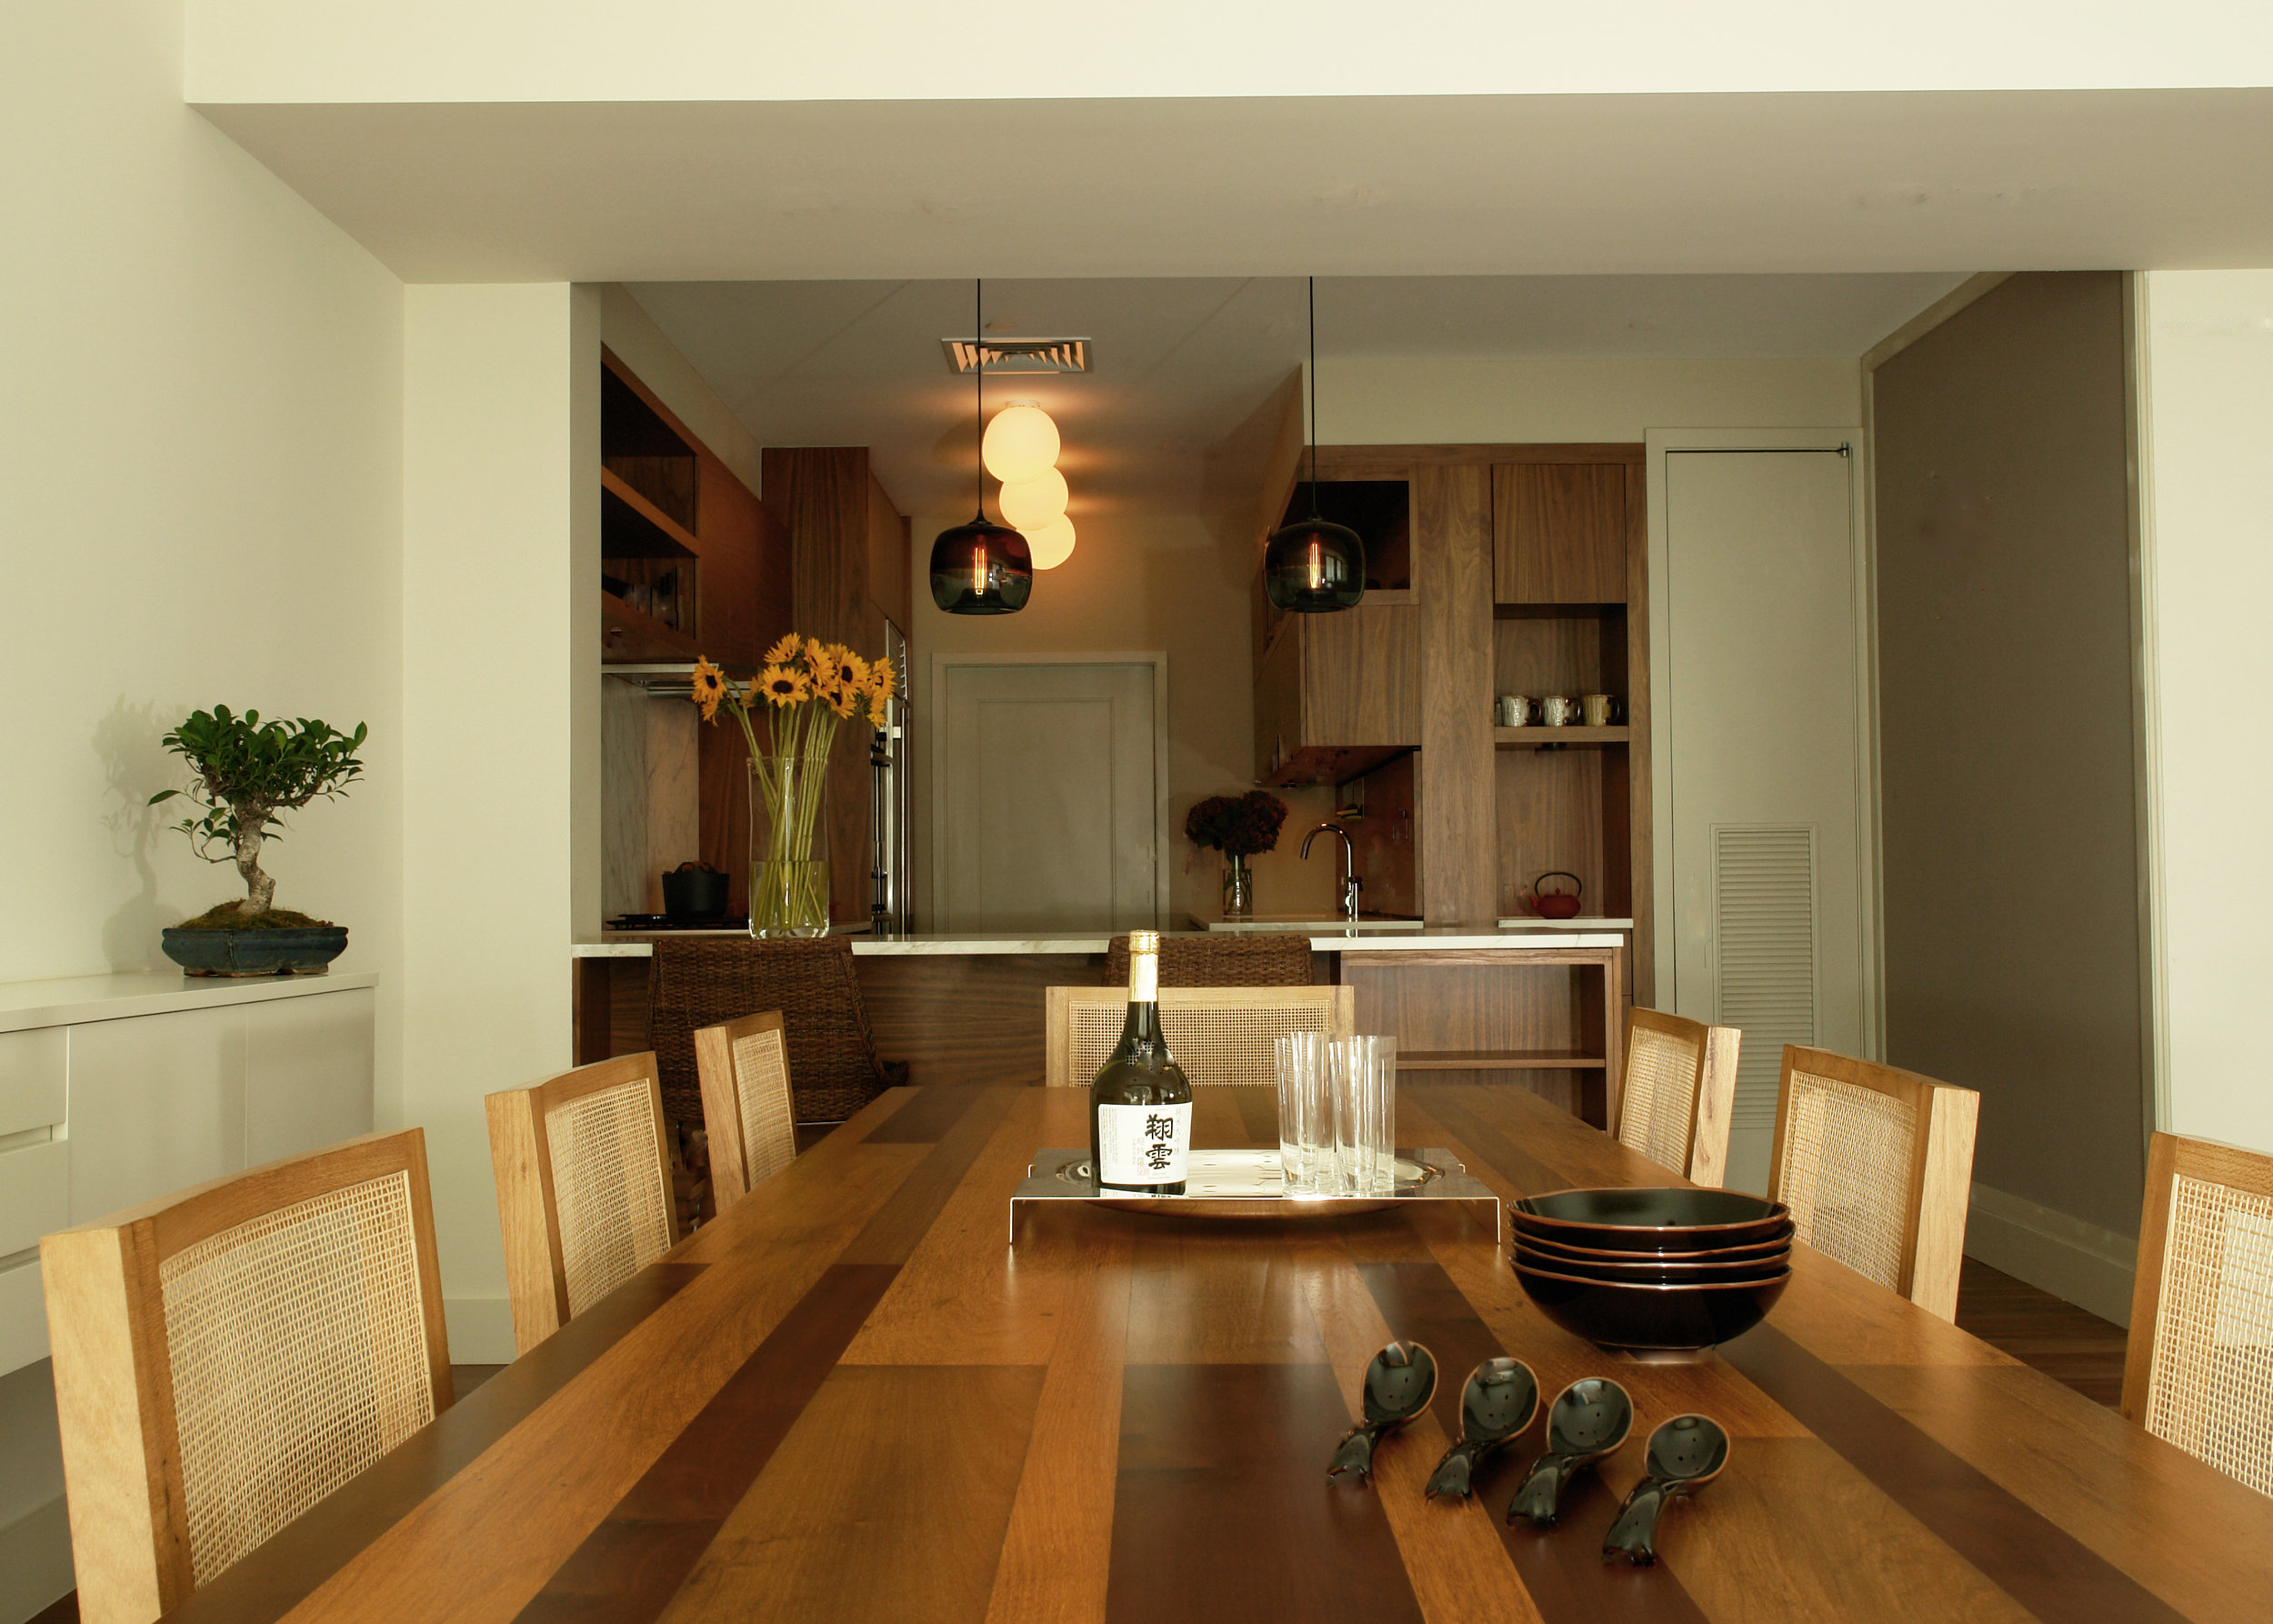 Petty DINING ROOM TO KITCHEN_edited-2 - Copy.jpg